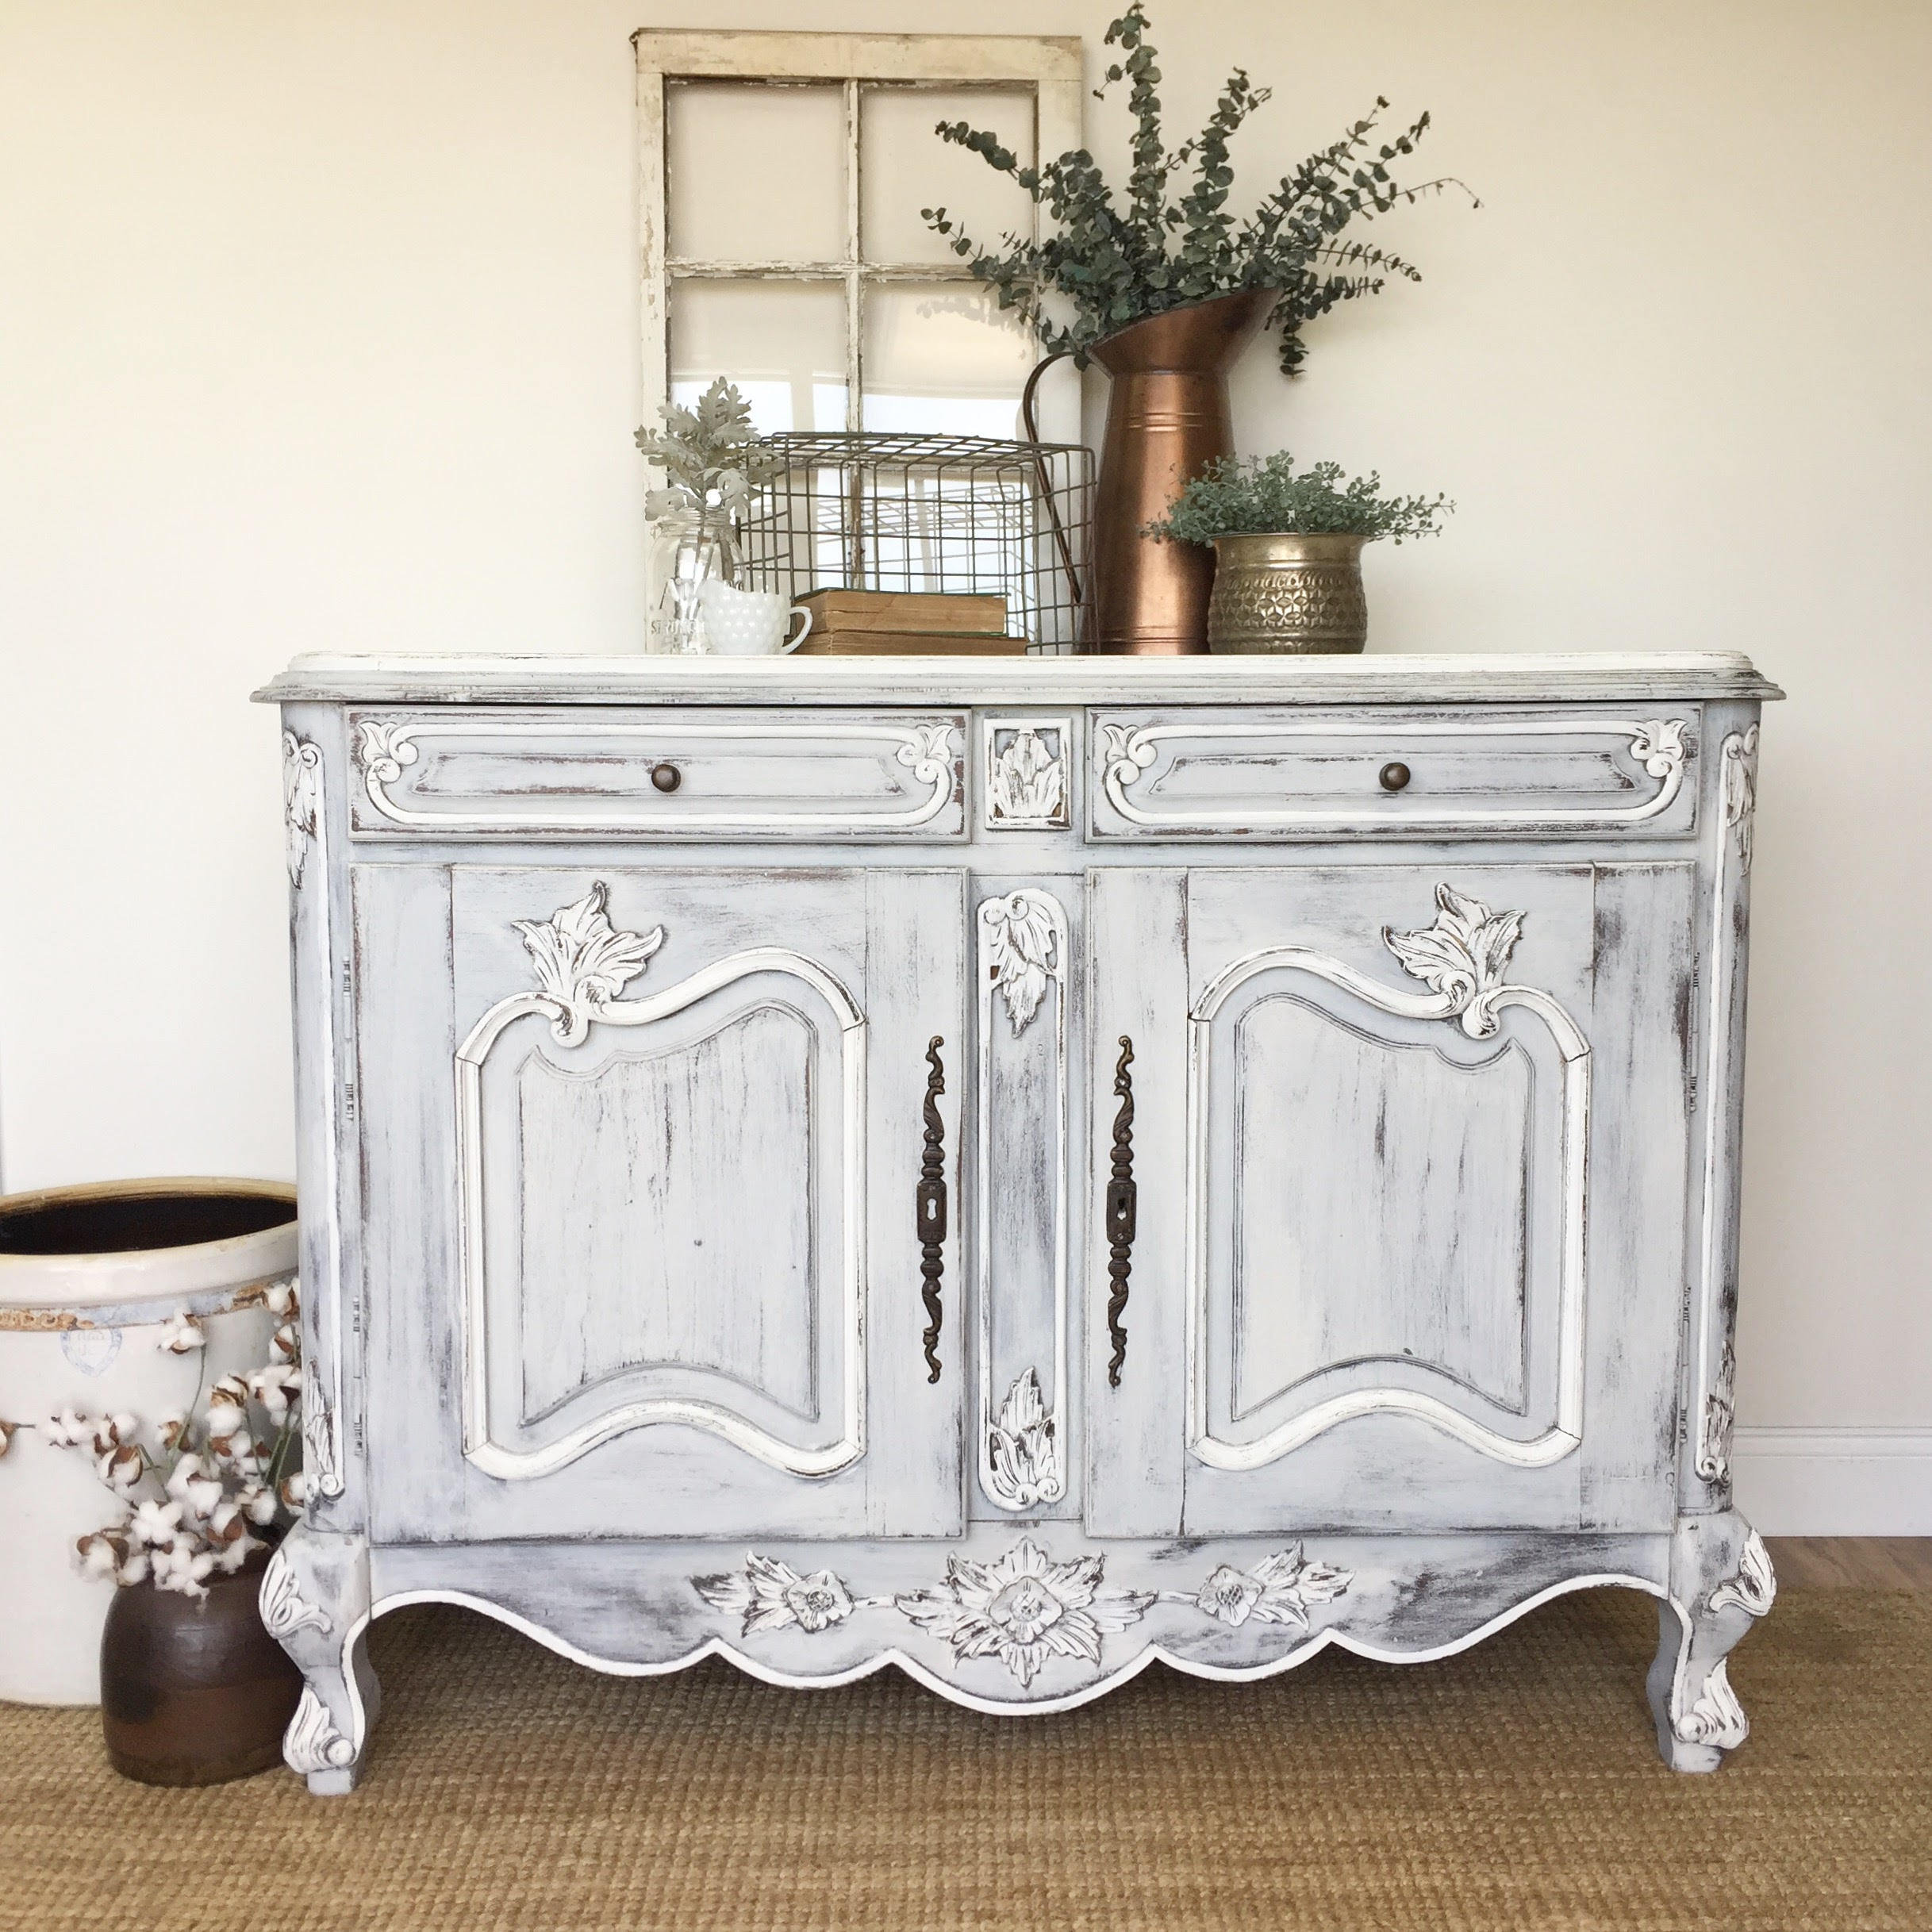 White French Country Farmhouse Sideboard Buffet – Antique Painted Furniture